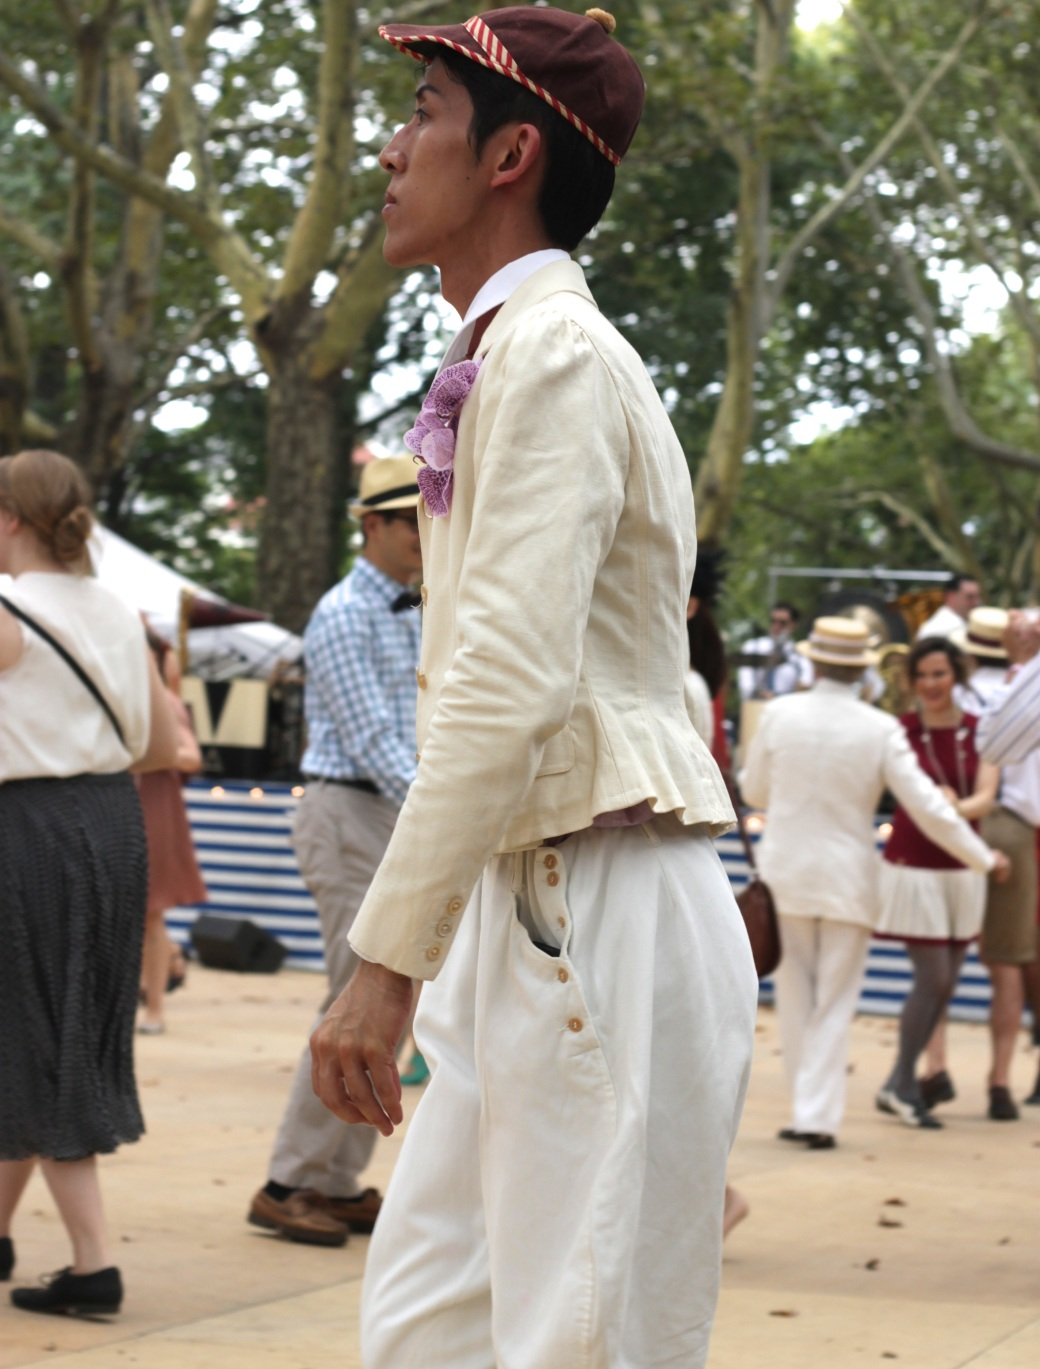 new york city governors island jazz age lawn party august 17 2014 84